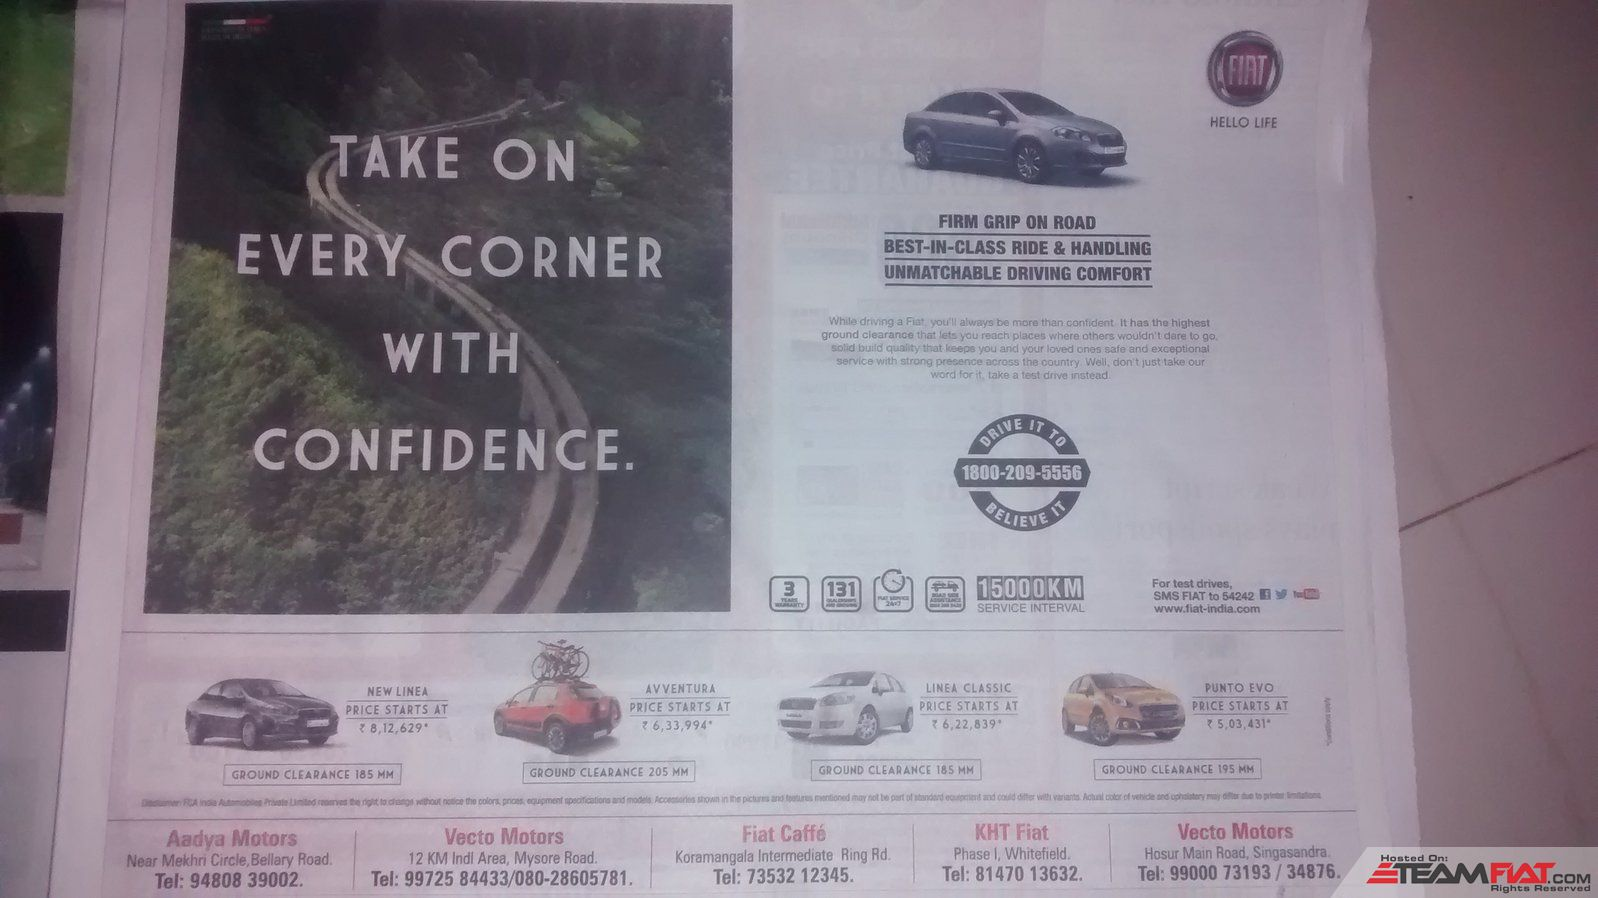 Fiat_ad_The_Hindu_25_Apr_2015.jpg